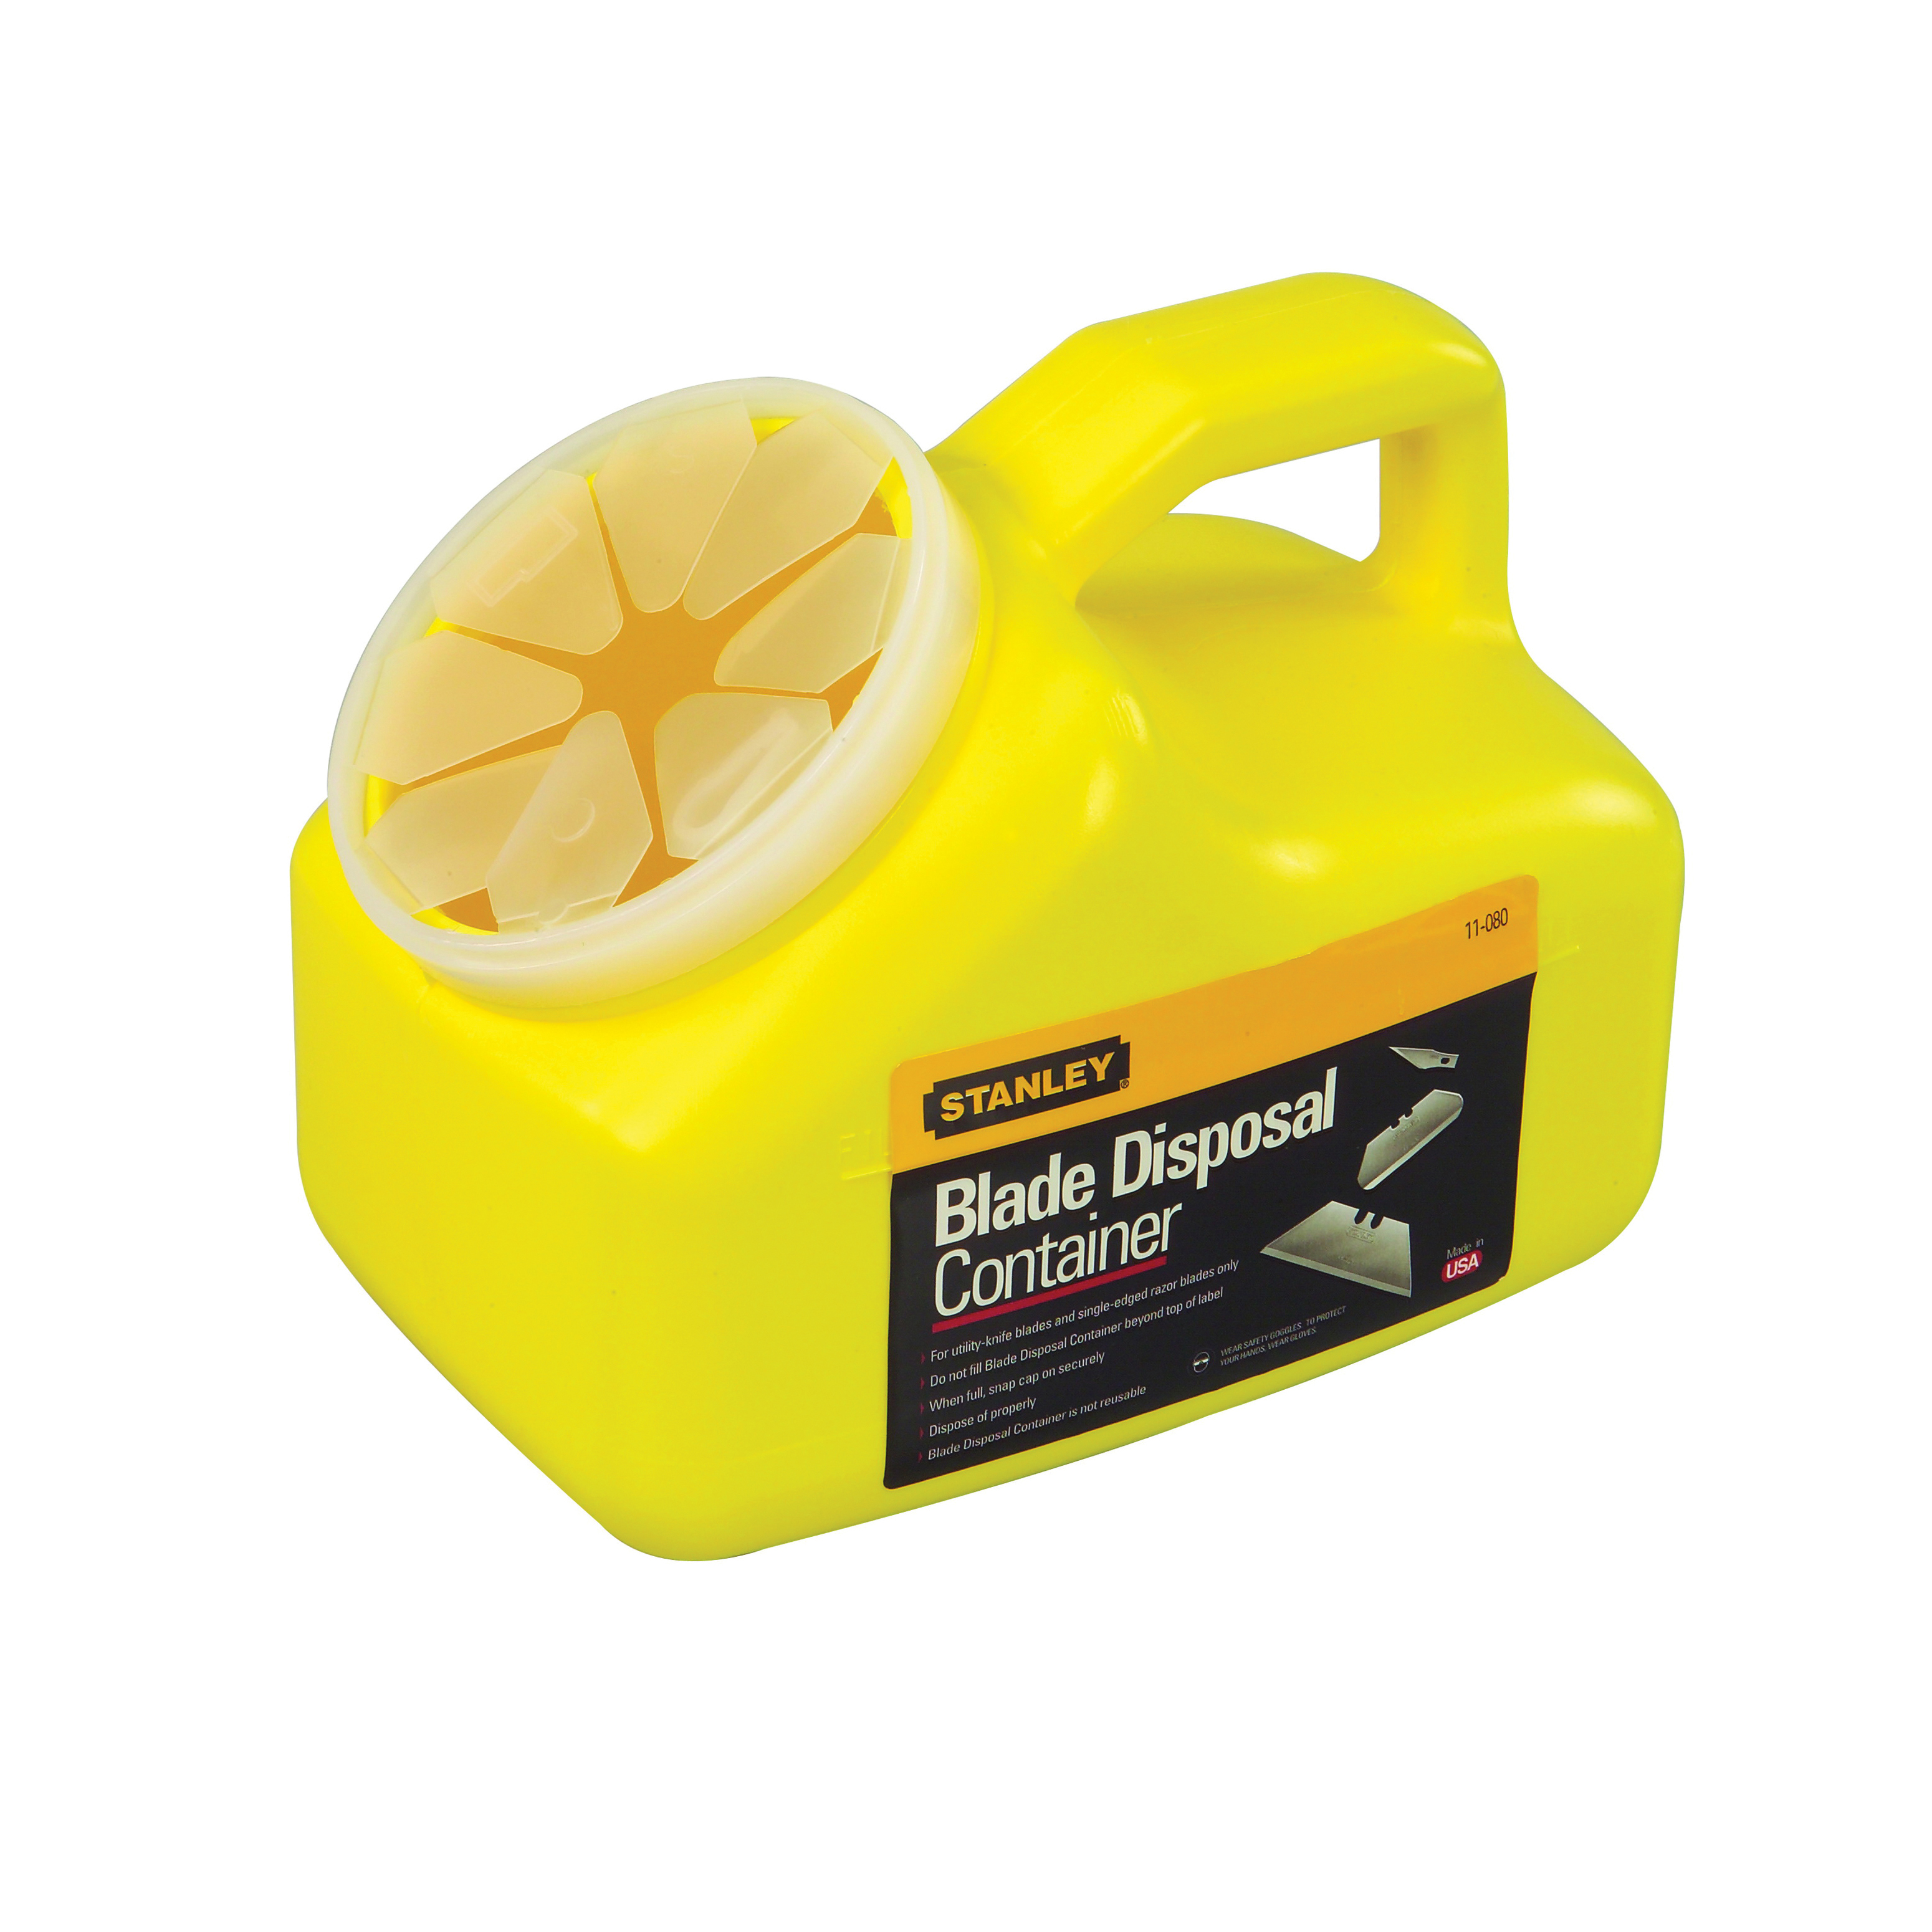 Stanley® 11-080 Blade Disposal Container, 2 qt, 5-3/4 in L x 8-3/4 in W x 7-1/4 in H, Plastic, Yellow